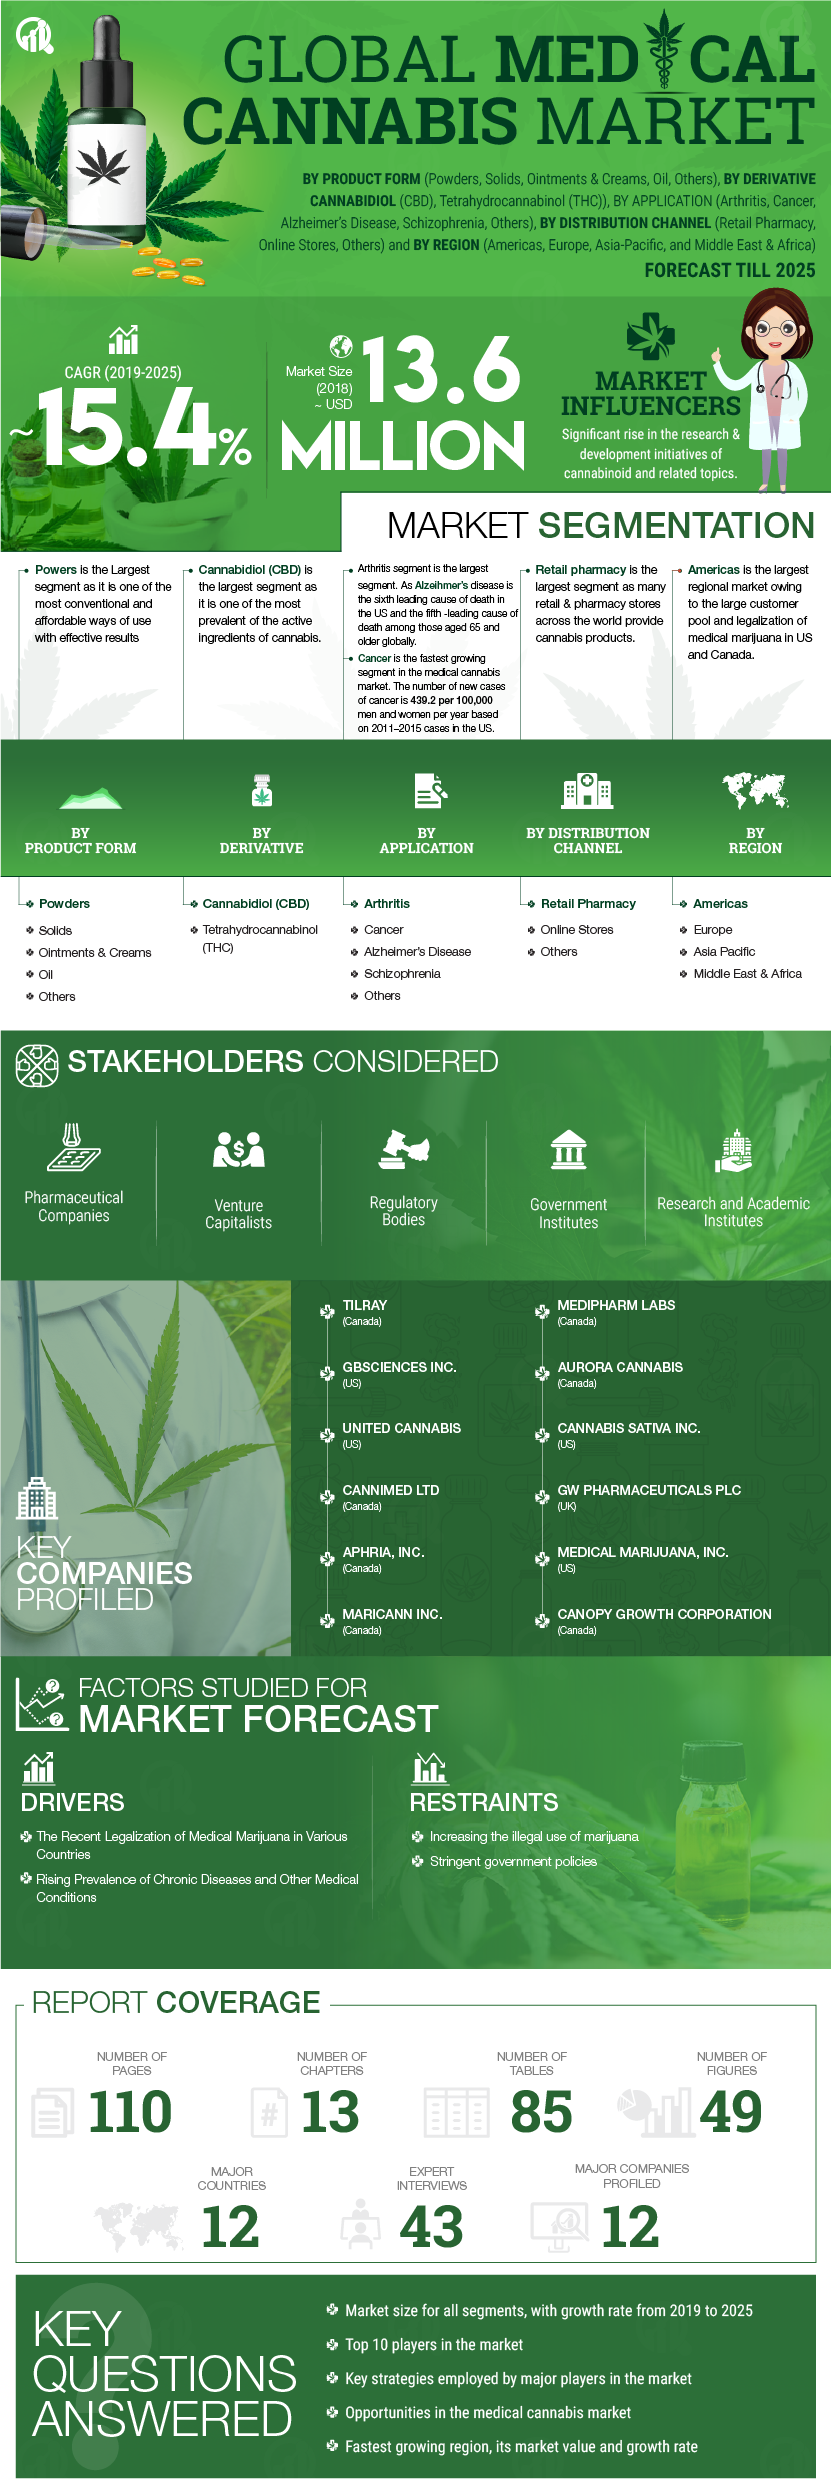 Medical Cannabis Market Size 2020, Research Report, Global Industry Growth, Regional Analysis, Future Demand, Merger, Top Leaders, Growing CAGR Value